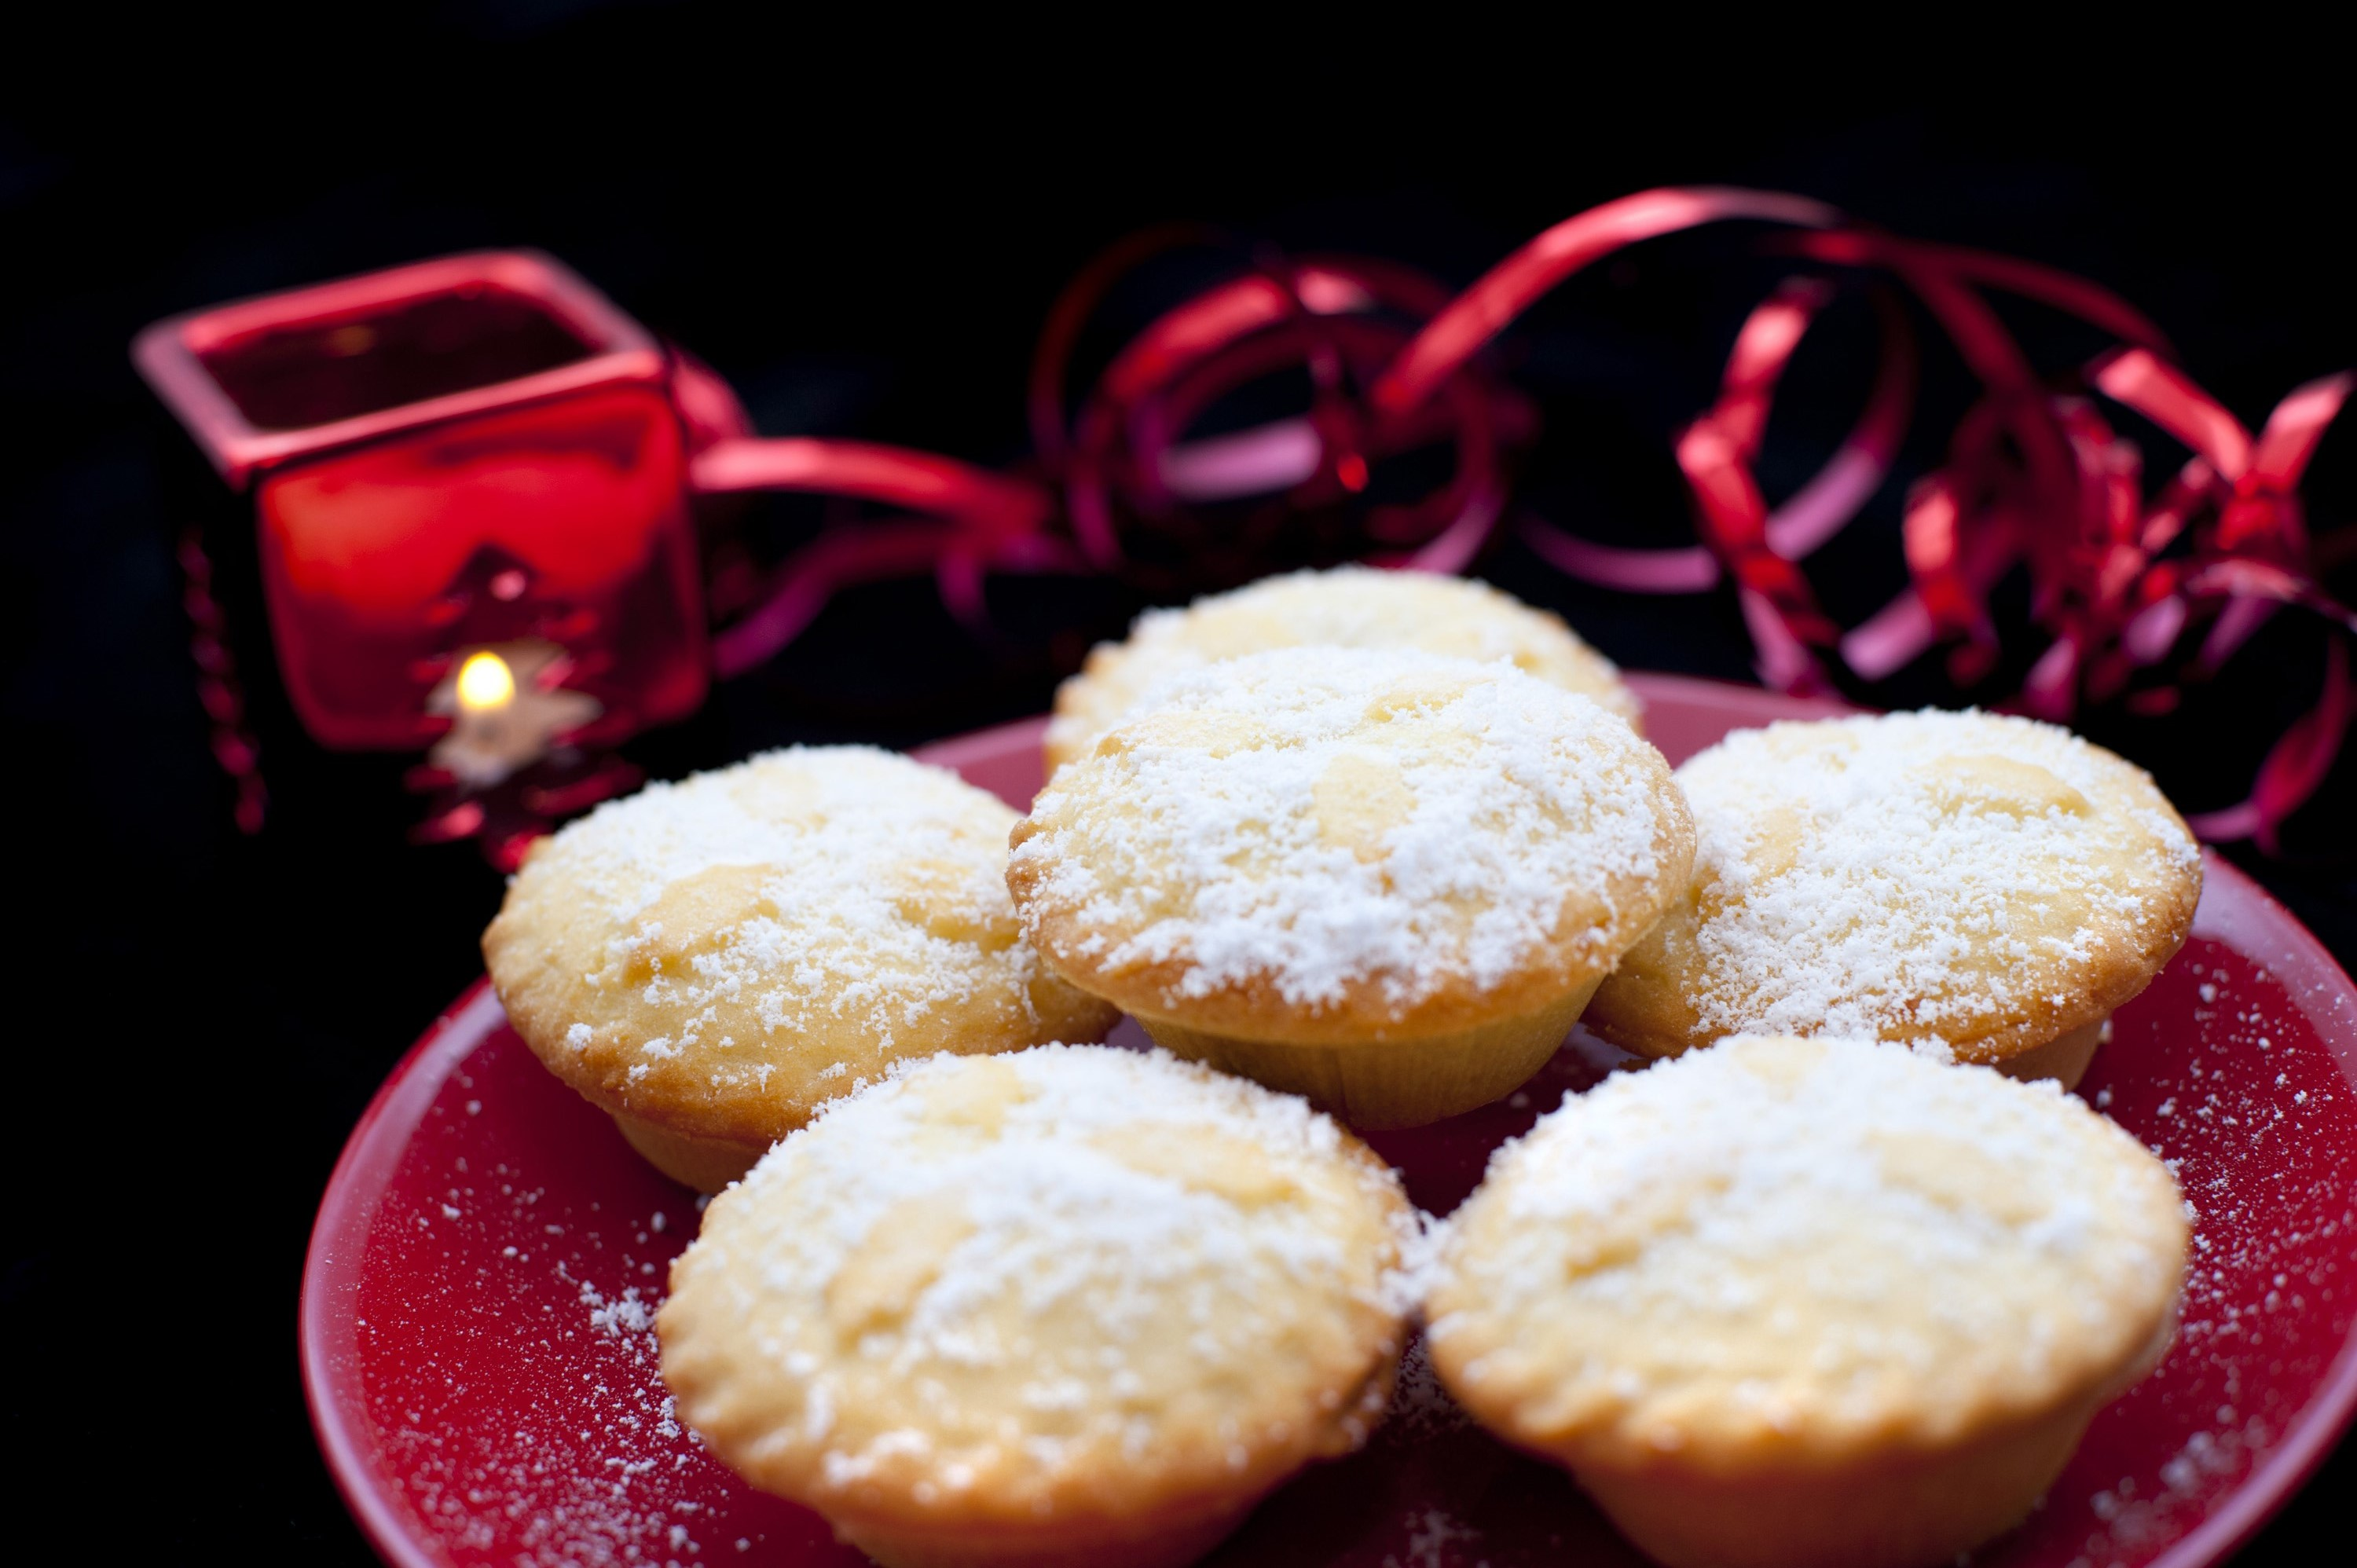 Plate of Christmas mince pies with golden crusts and fruity filling sprinkled with sugar and served on a red plate on a festive table with decorations